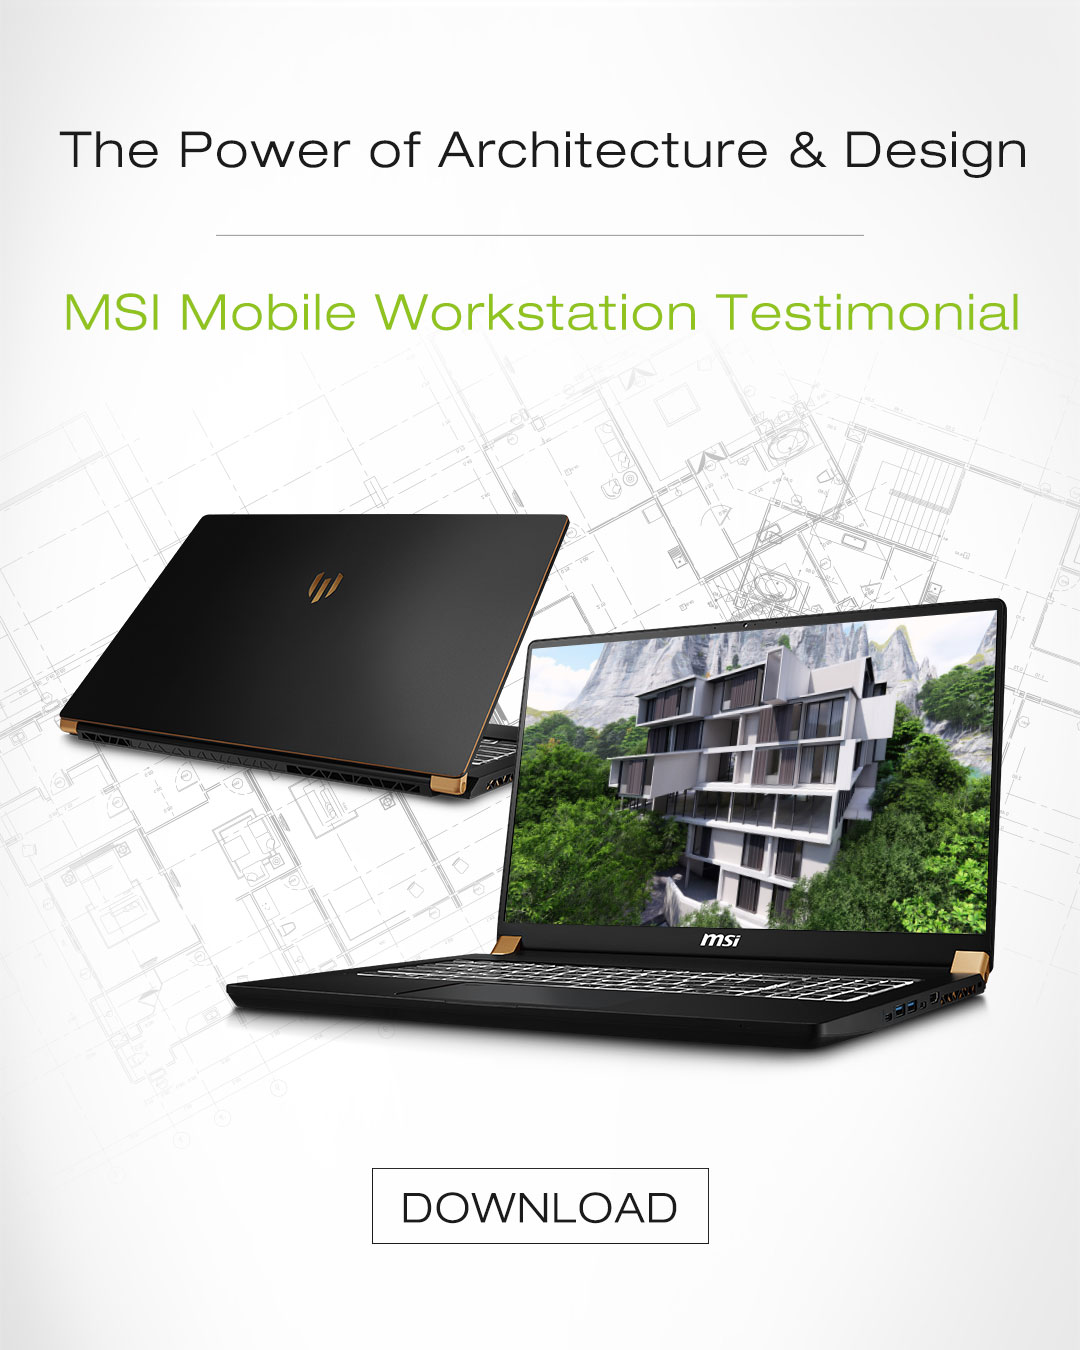 Mobile Workstaion Testimonial